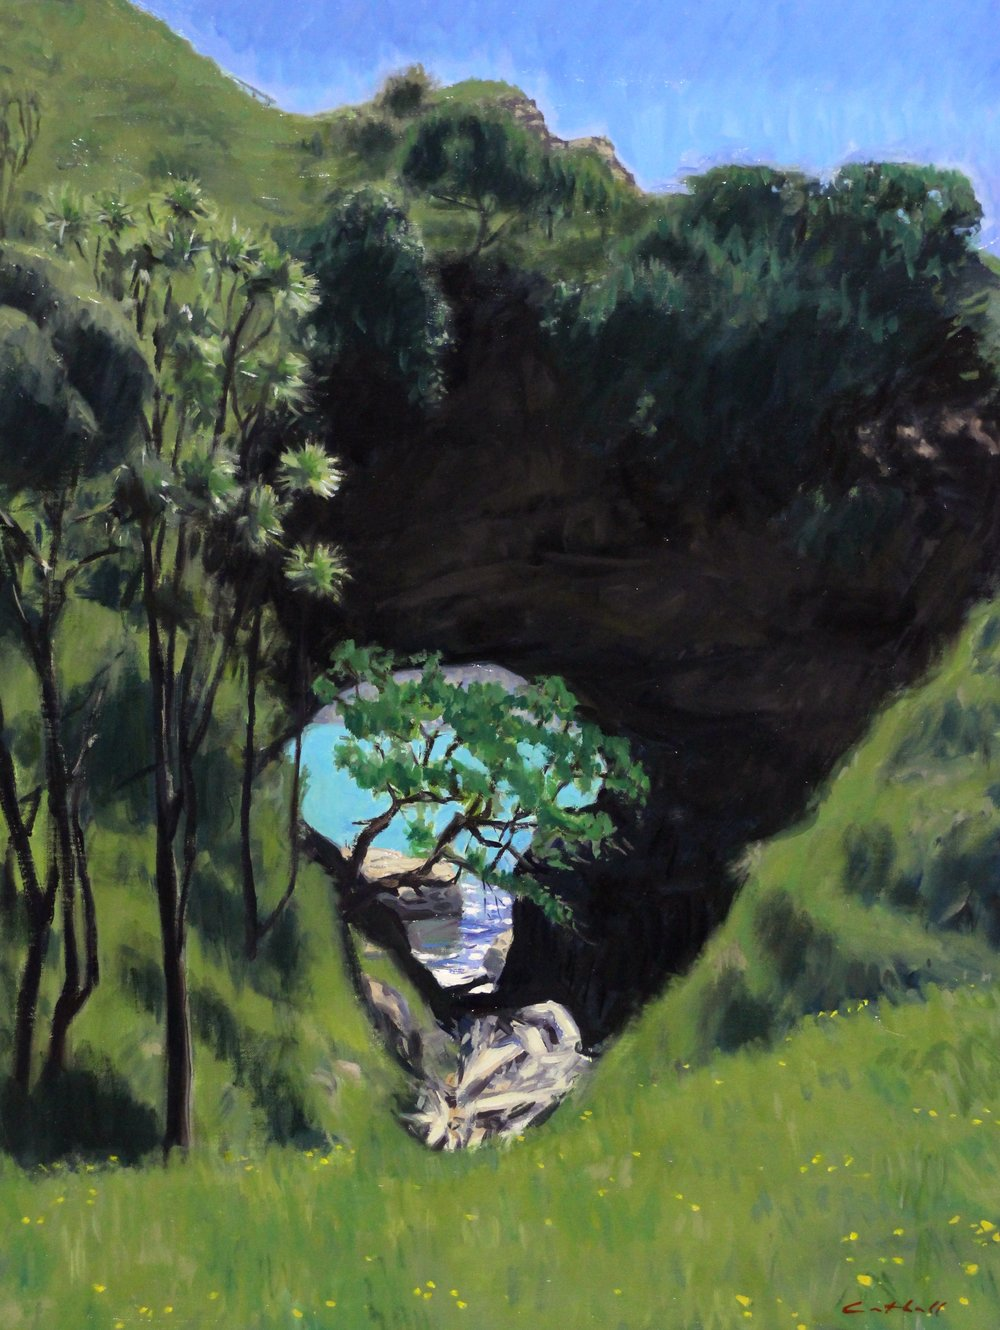 Te Kotere o te Whenua,  Oil on Canvas 77 x 58cm, 2017